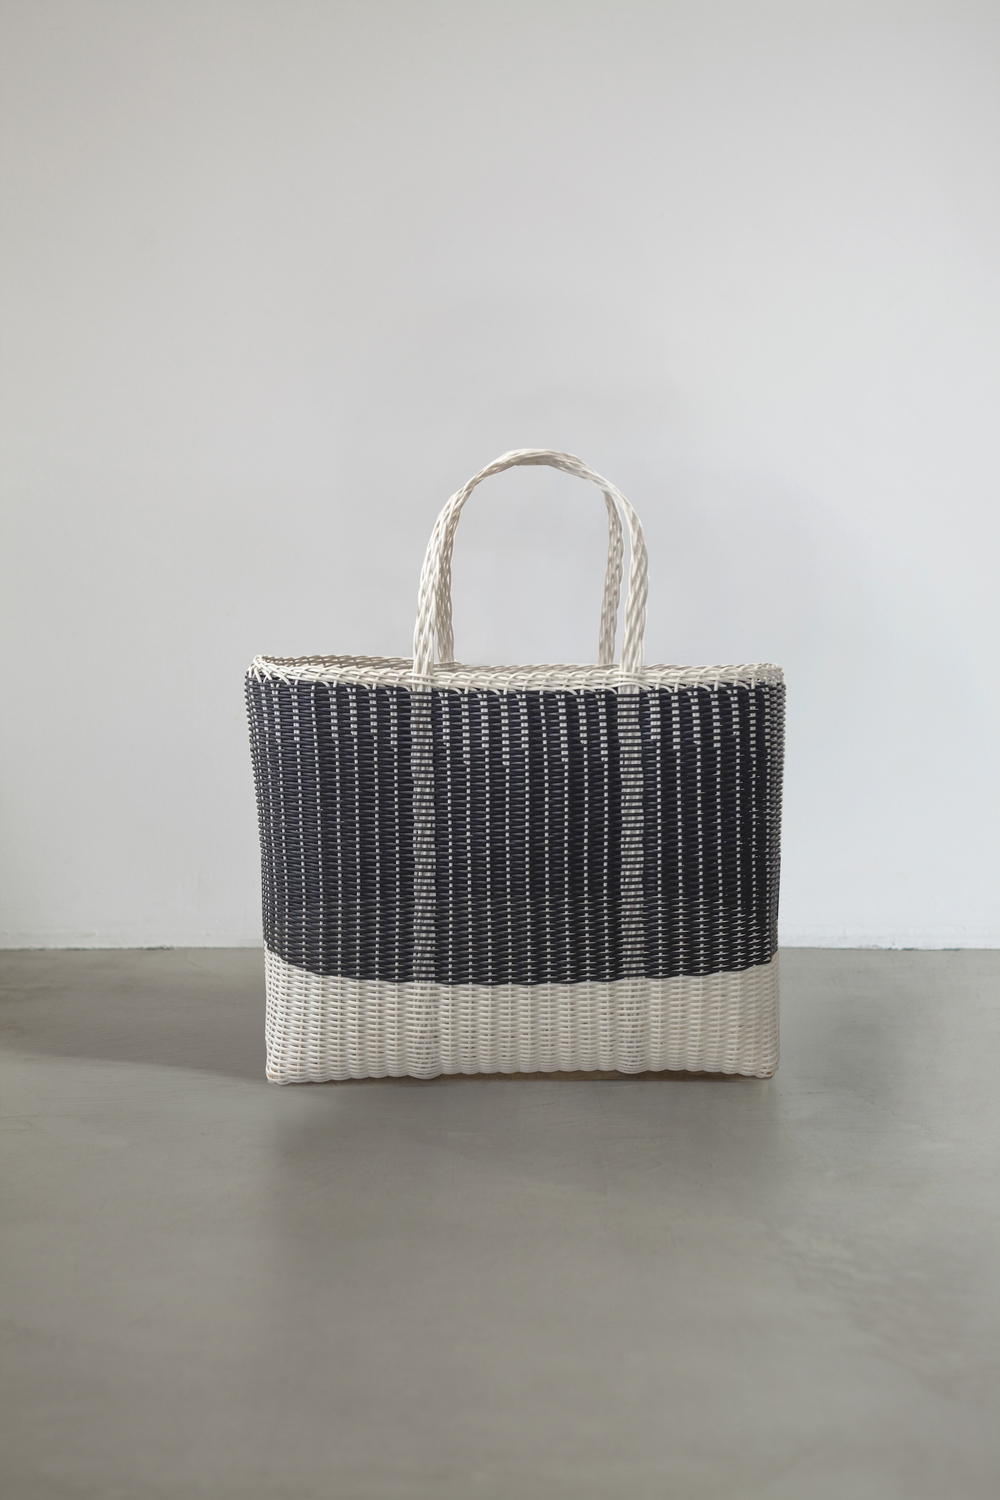 LARGE TOTE BAG - BICOLOR  Handmade in Guatemala, 100% plastic Available on different colors and sizes 31x40x20 cm - 12,2x15,7x8 inches